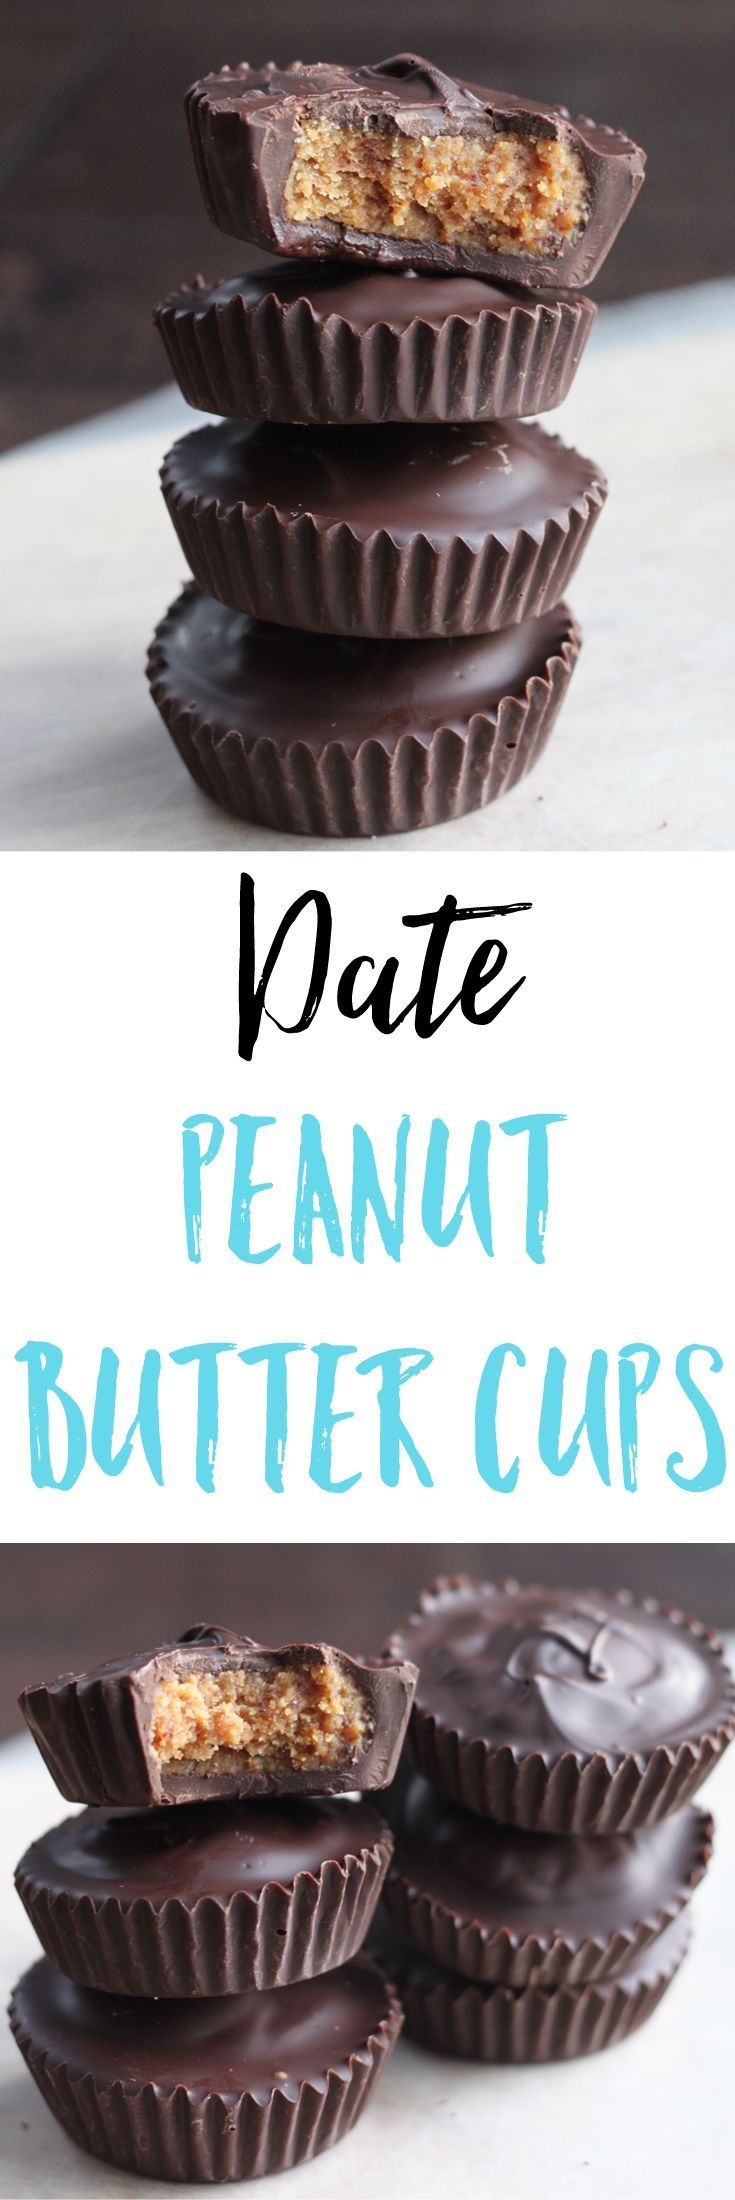 These antioxidant rich Date Peanut Butter Cups use naturally sweet dates as the main source of sugar and are a delicious and healthy treat. via /euphorianutr/